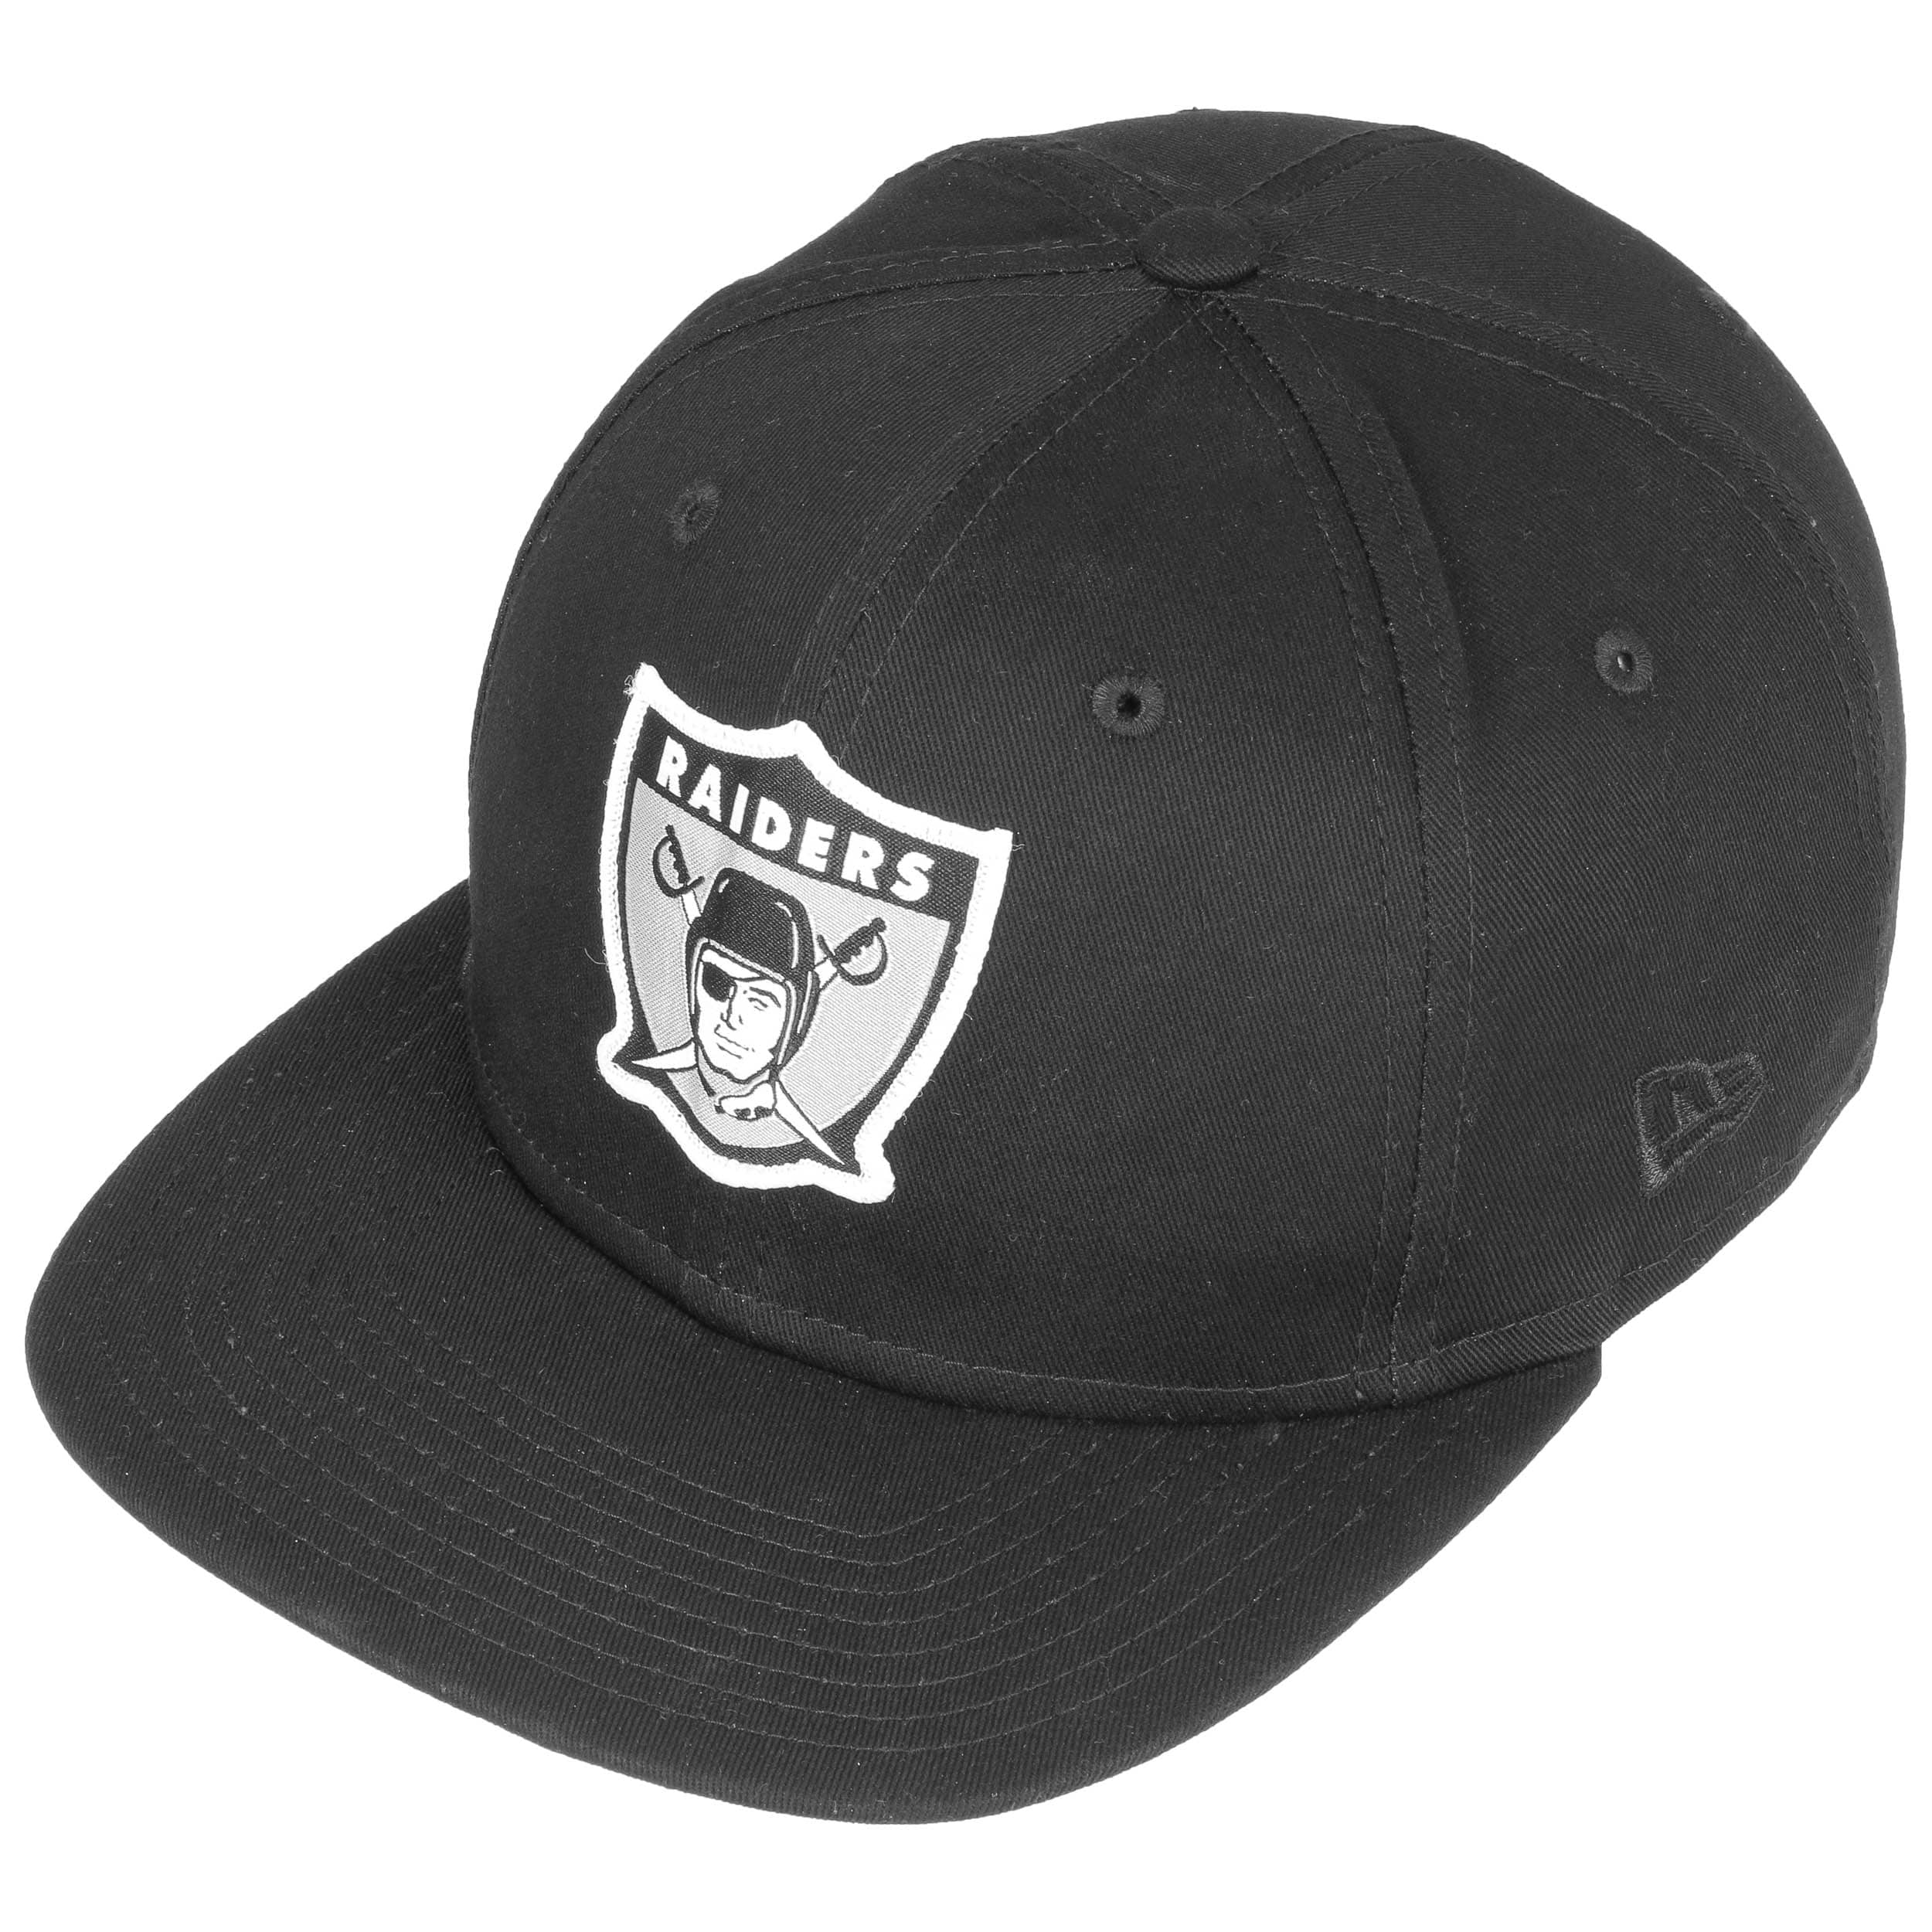 5340312d ... discount code for 9fifty patch raiders cap by new era black 1 c51cf  6fc50